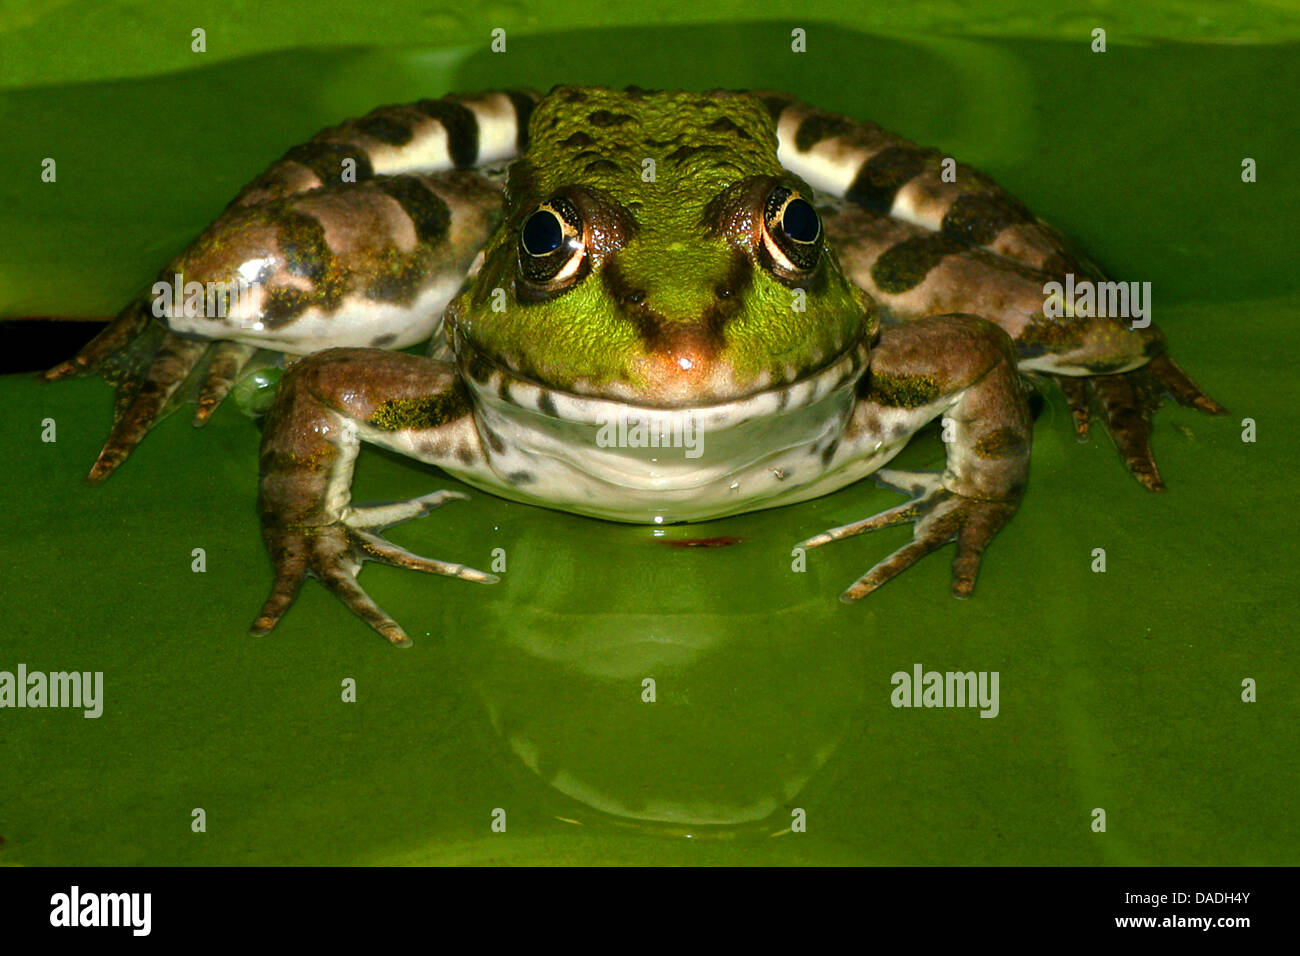 European edible frog, common edible frog (Rana kl. esculenta, Rana esculenta), sitting on a leaf in shallow water, - Stock Image